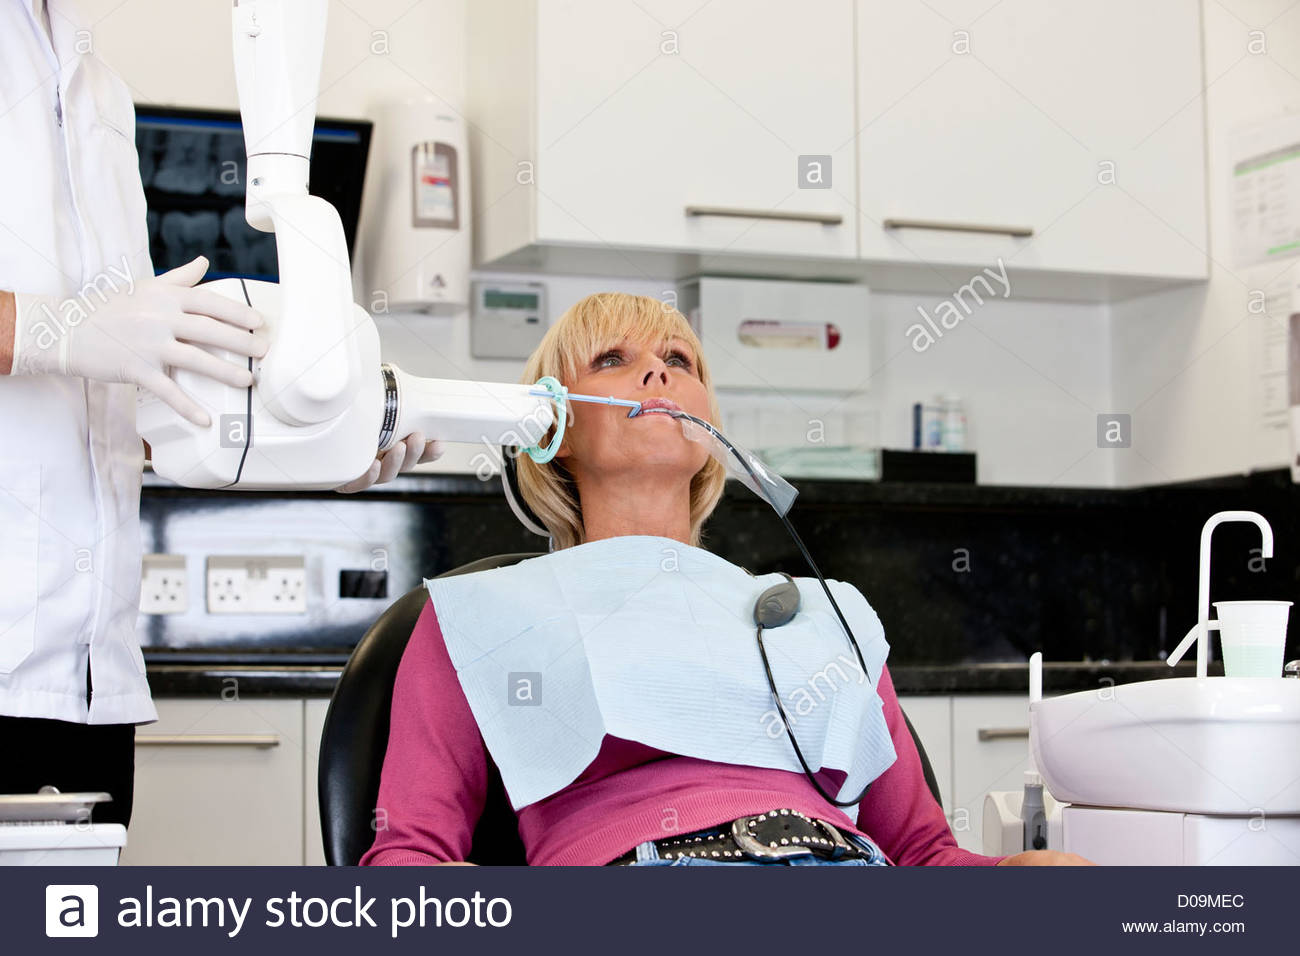 A female patient having an x-ray at the dentist - Stock Image